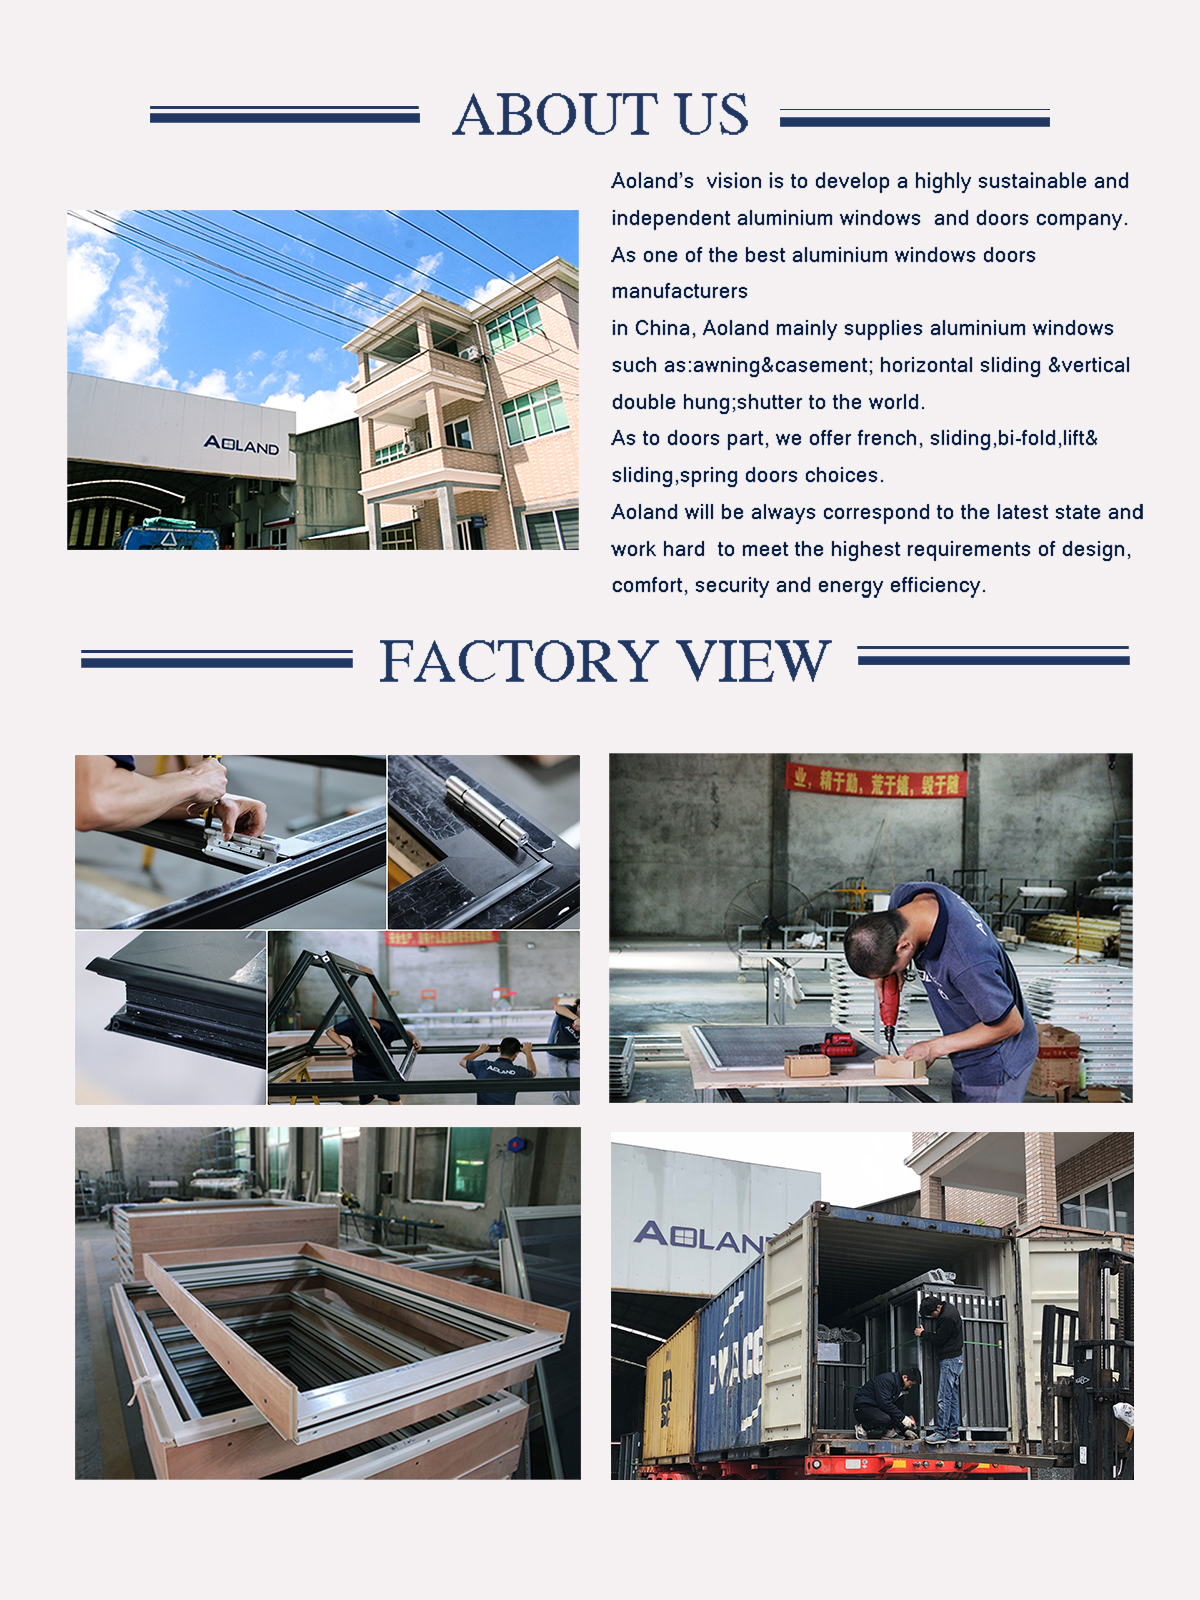 Aluminium hurricane impact bi-folding entyry  doors with fluorocarbon coating